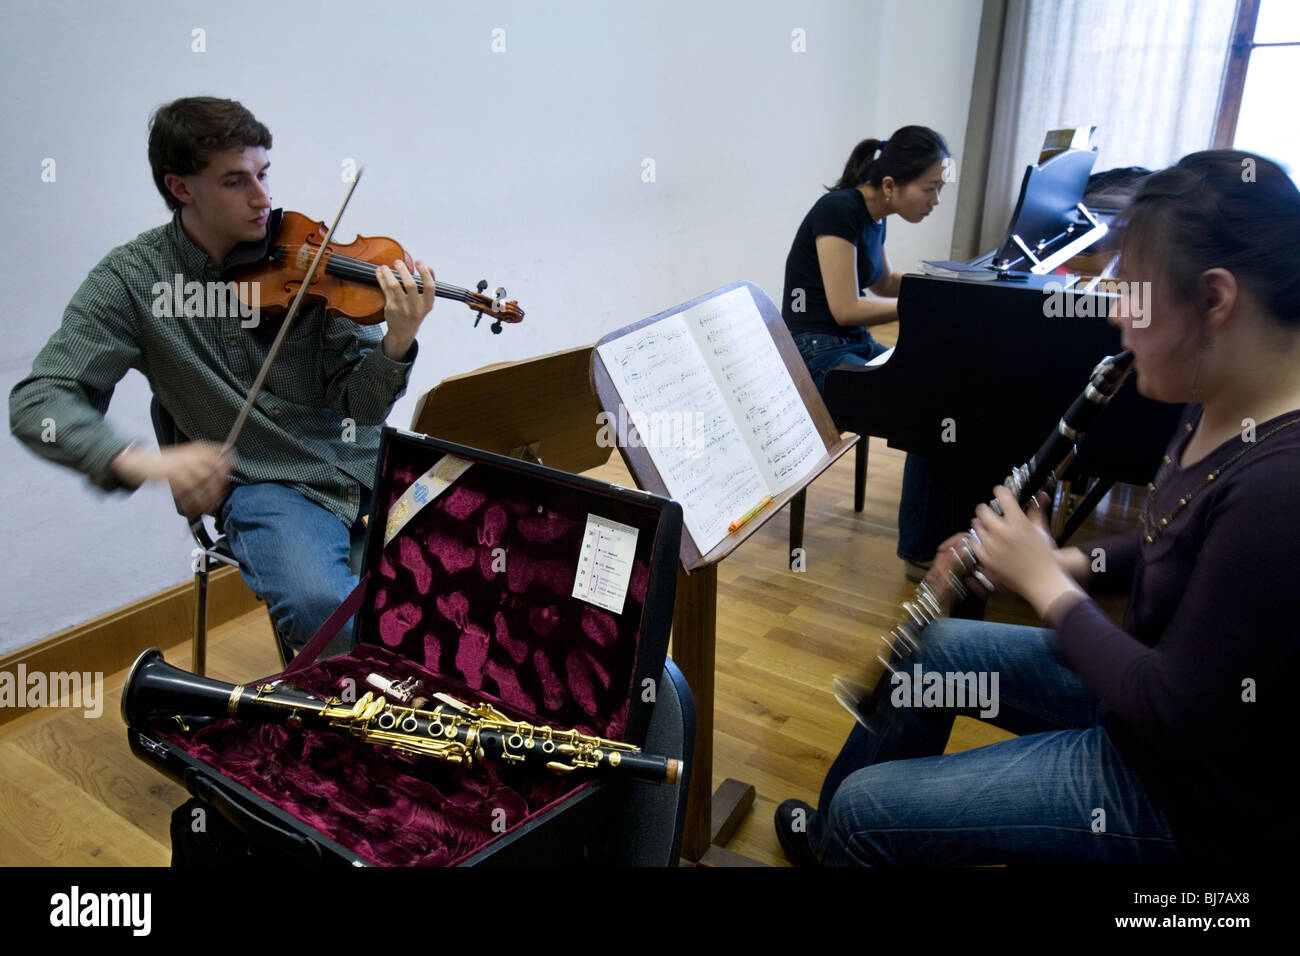 Music students rehearsing a Violin, Clarinet and Piano Trio Stock Photo